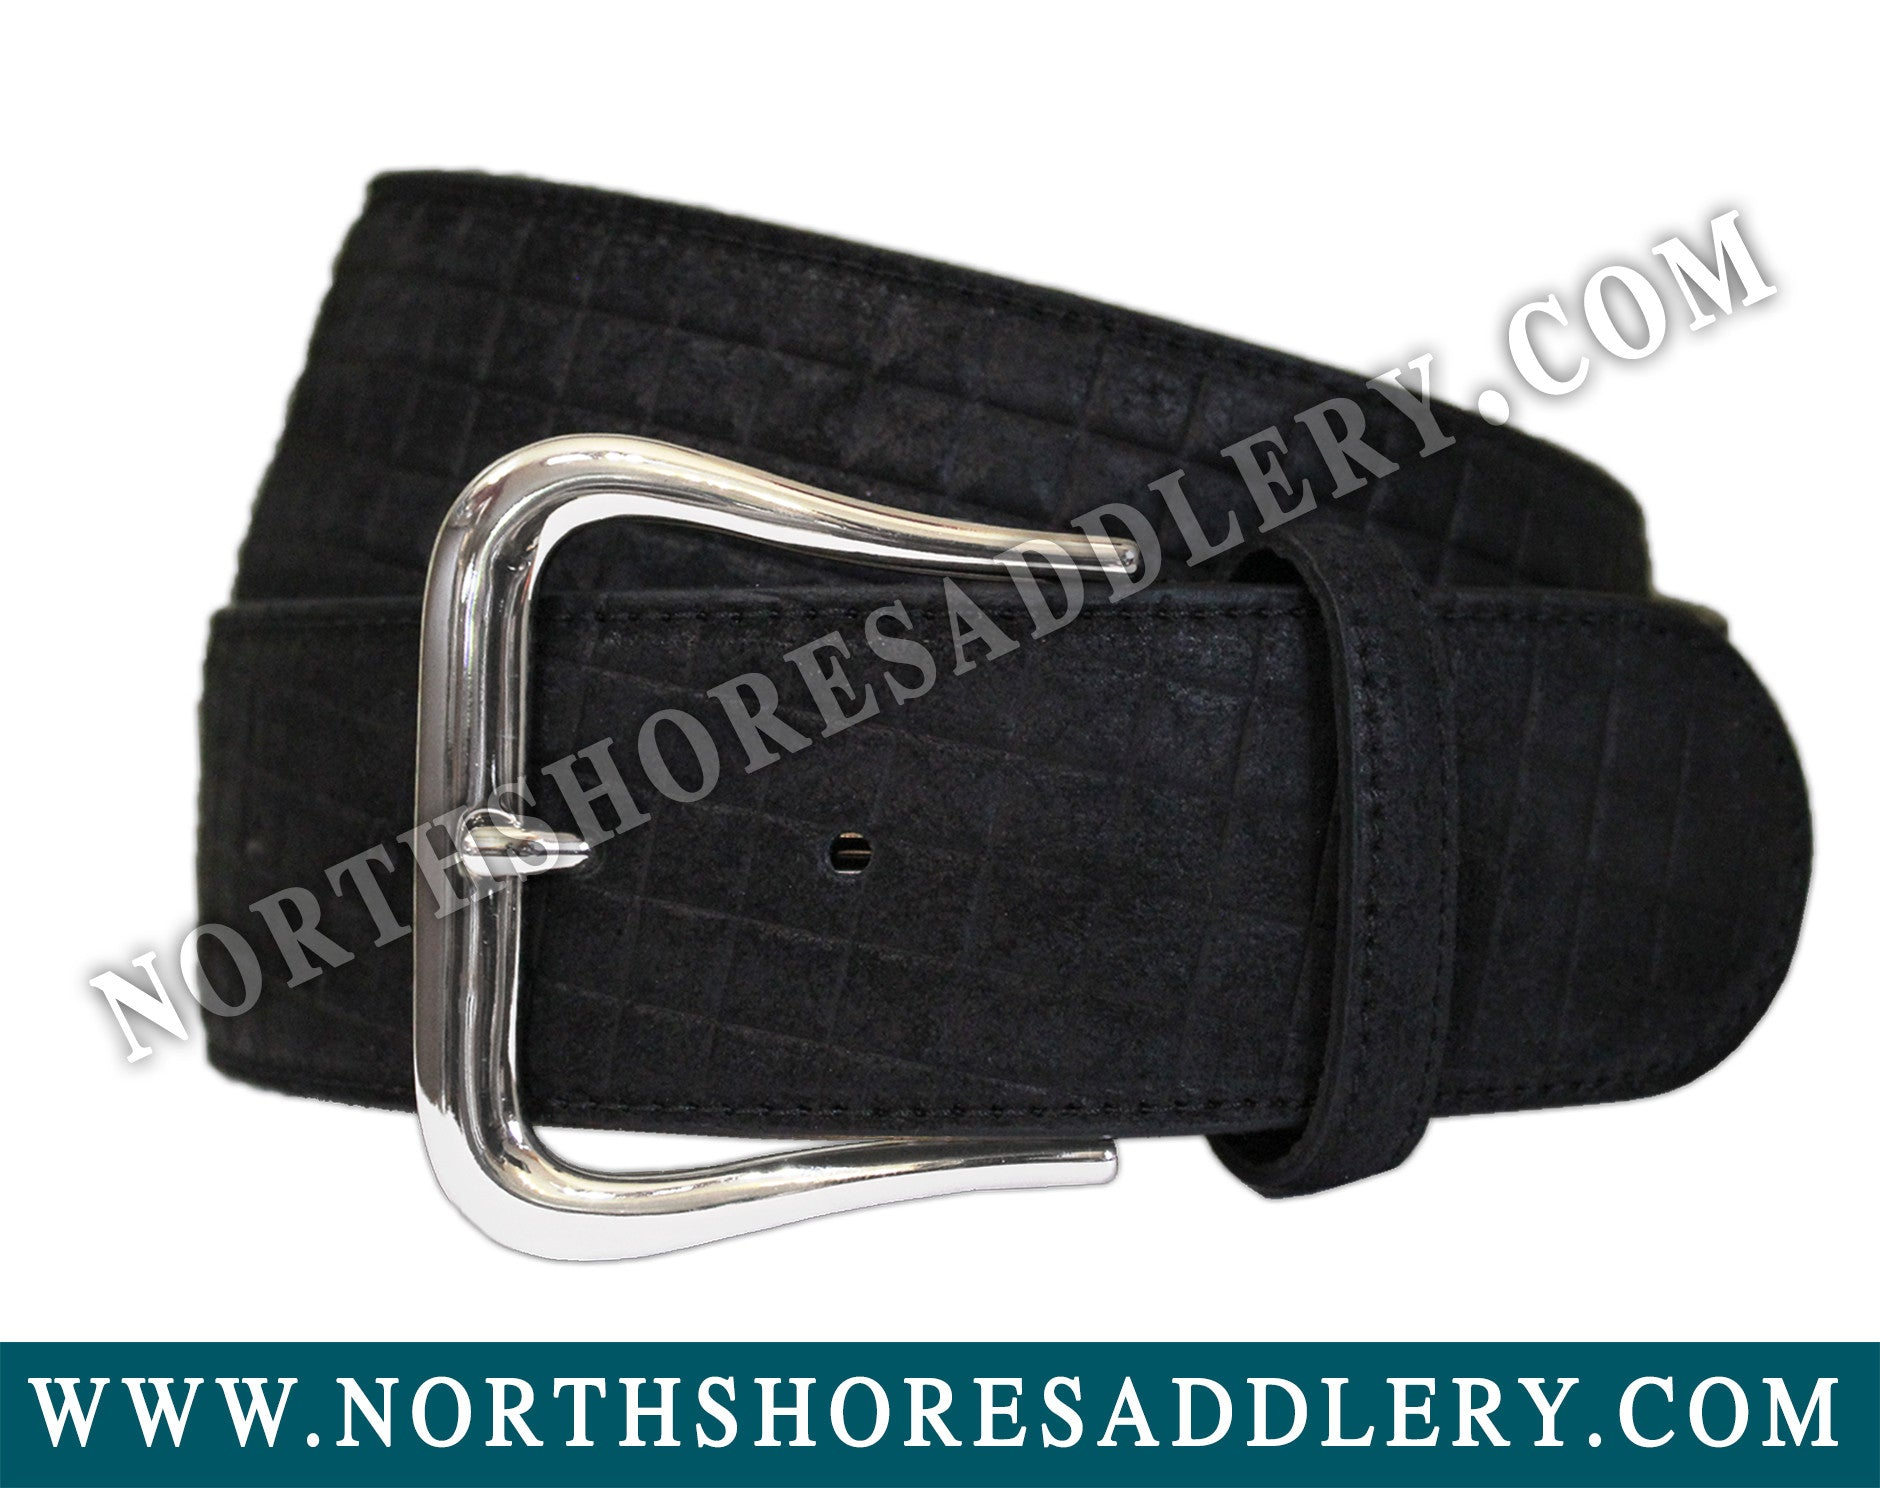 Tailored Sportsman Mini Me Suede Belt - North Shore Saddlery